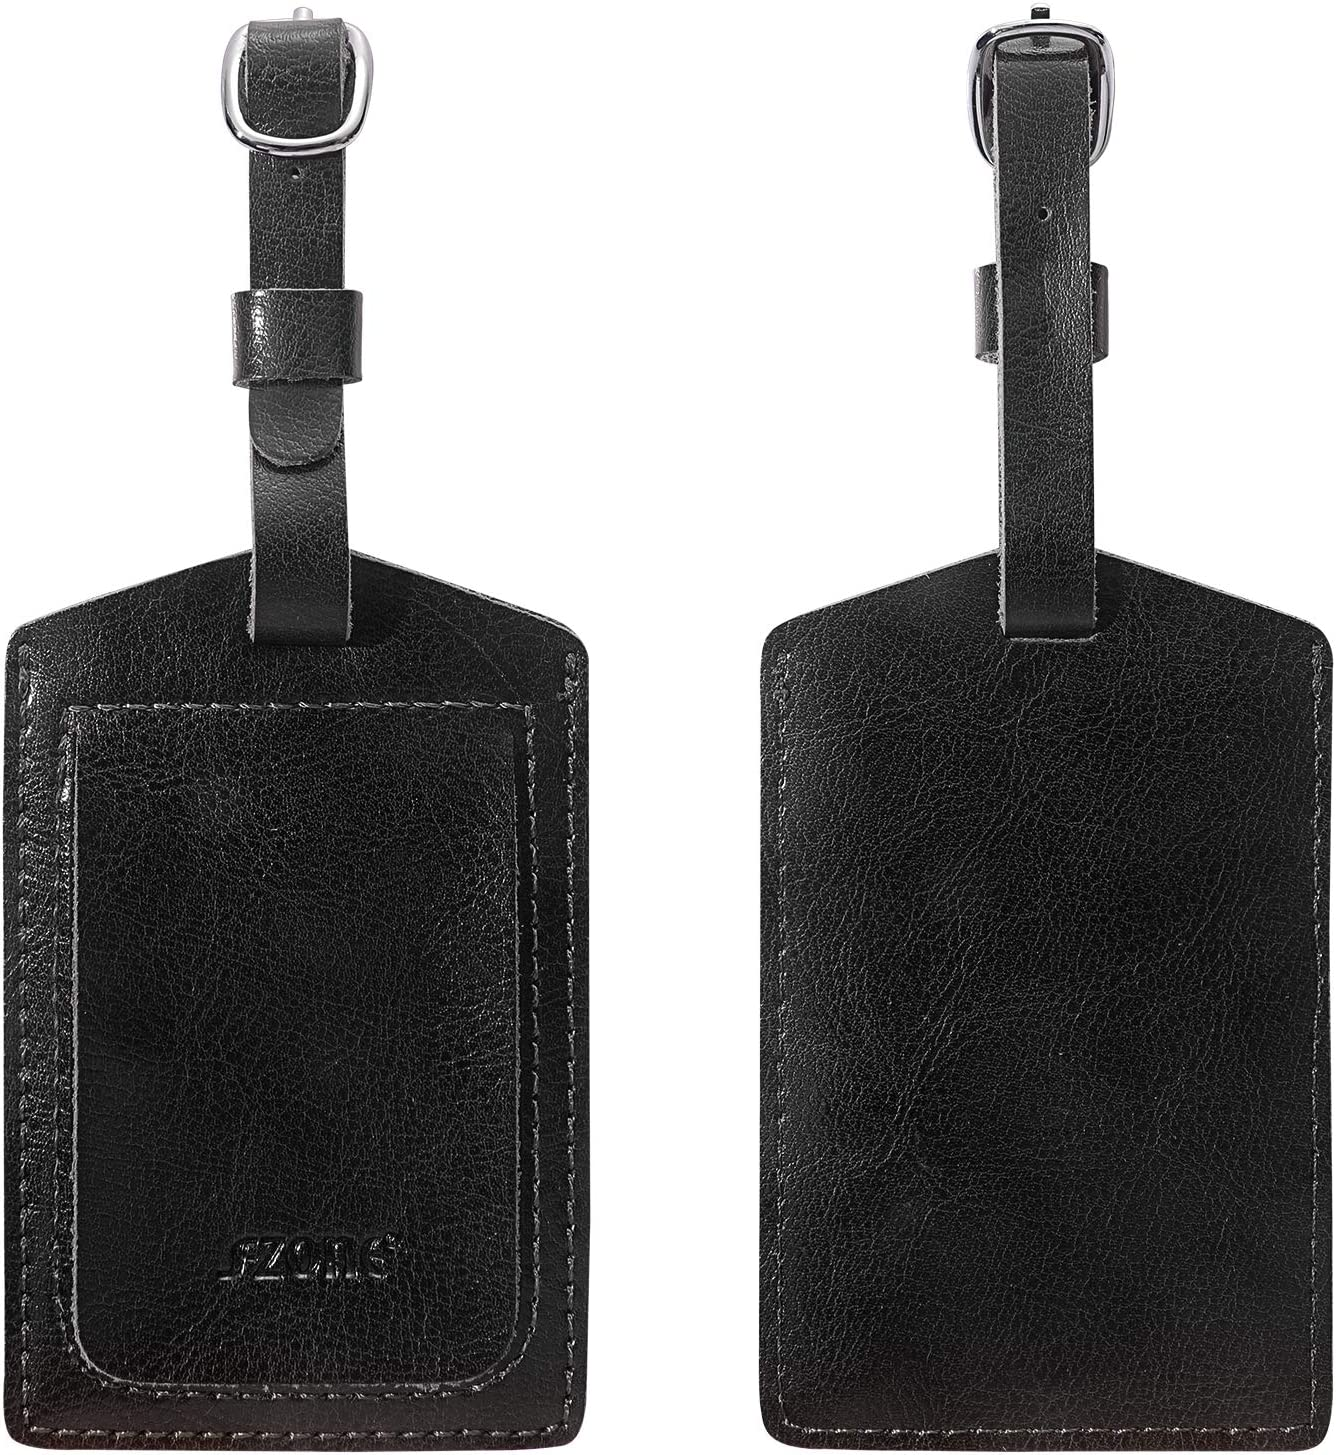 Red-Fox Leather Luggage Tags Personalized Travel Accessories With Privacy Flap